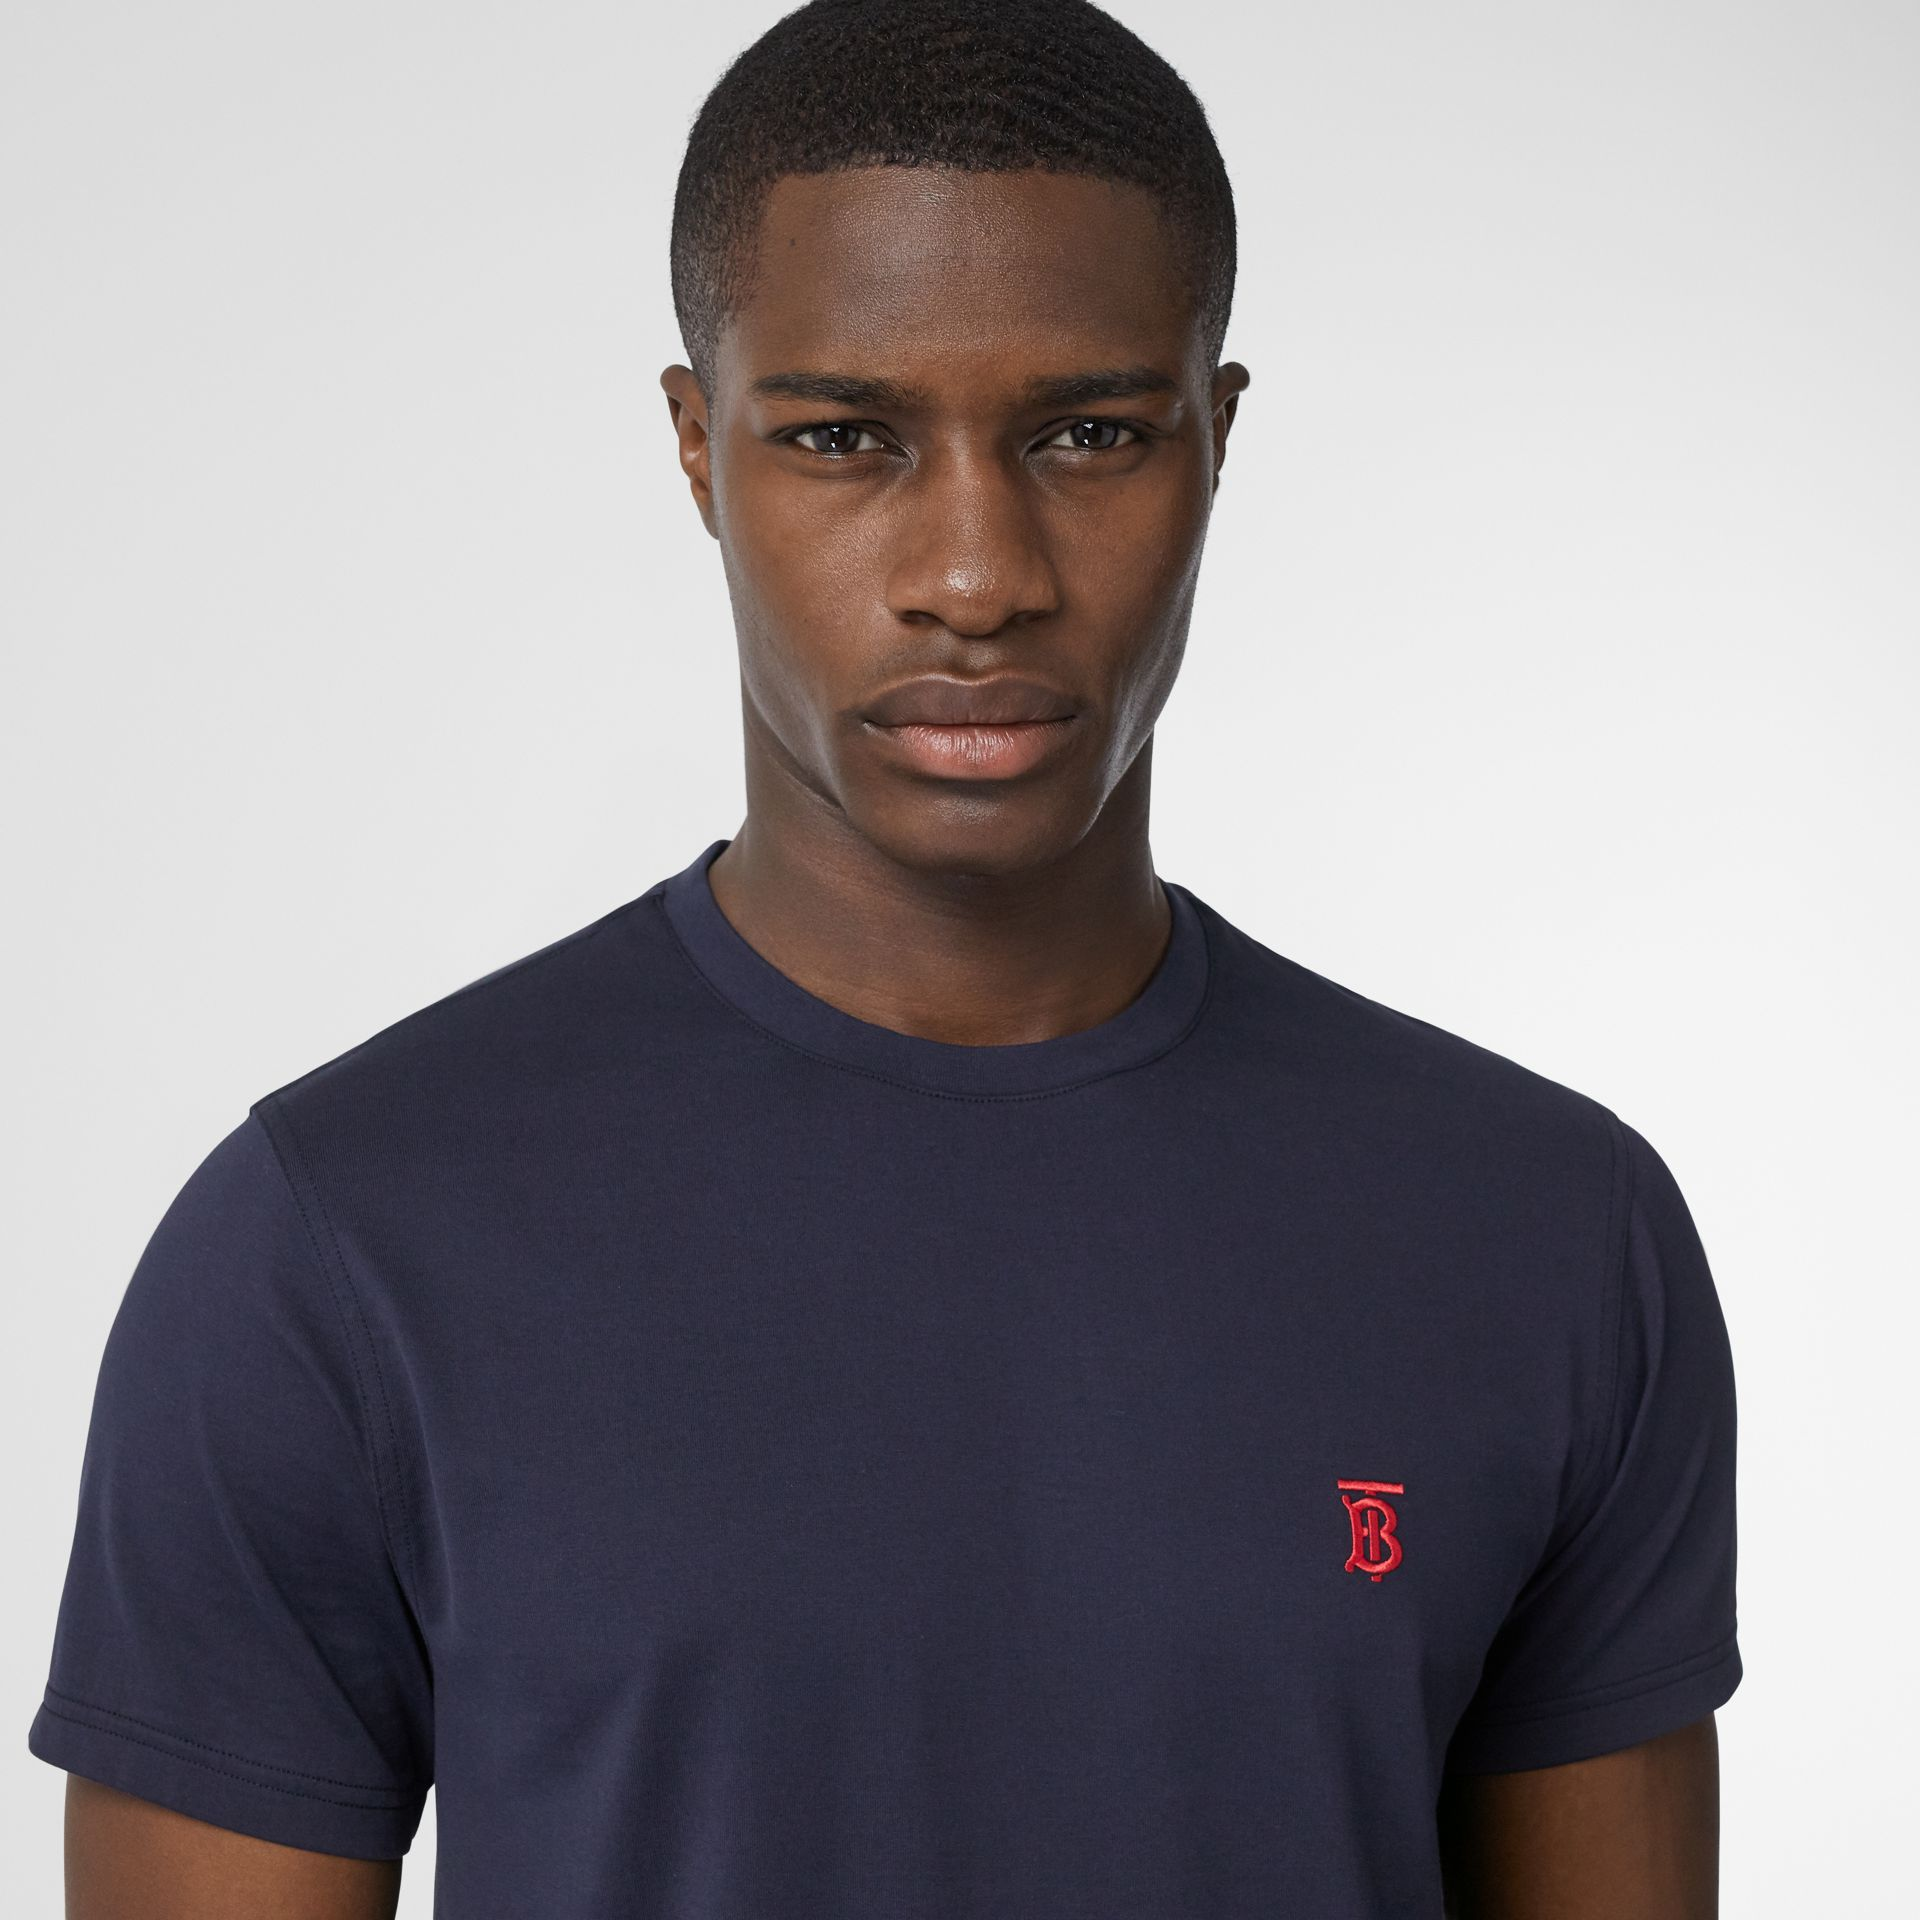 Monogram Motif Cotton T-shirt in Navy - Men | Burberry Canada - gallery image 1